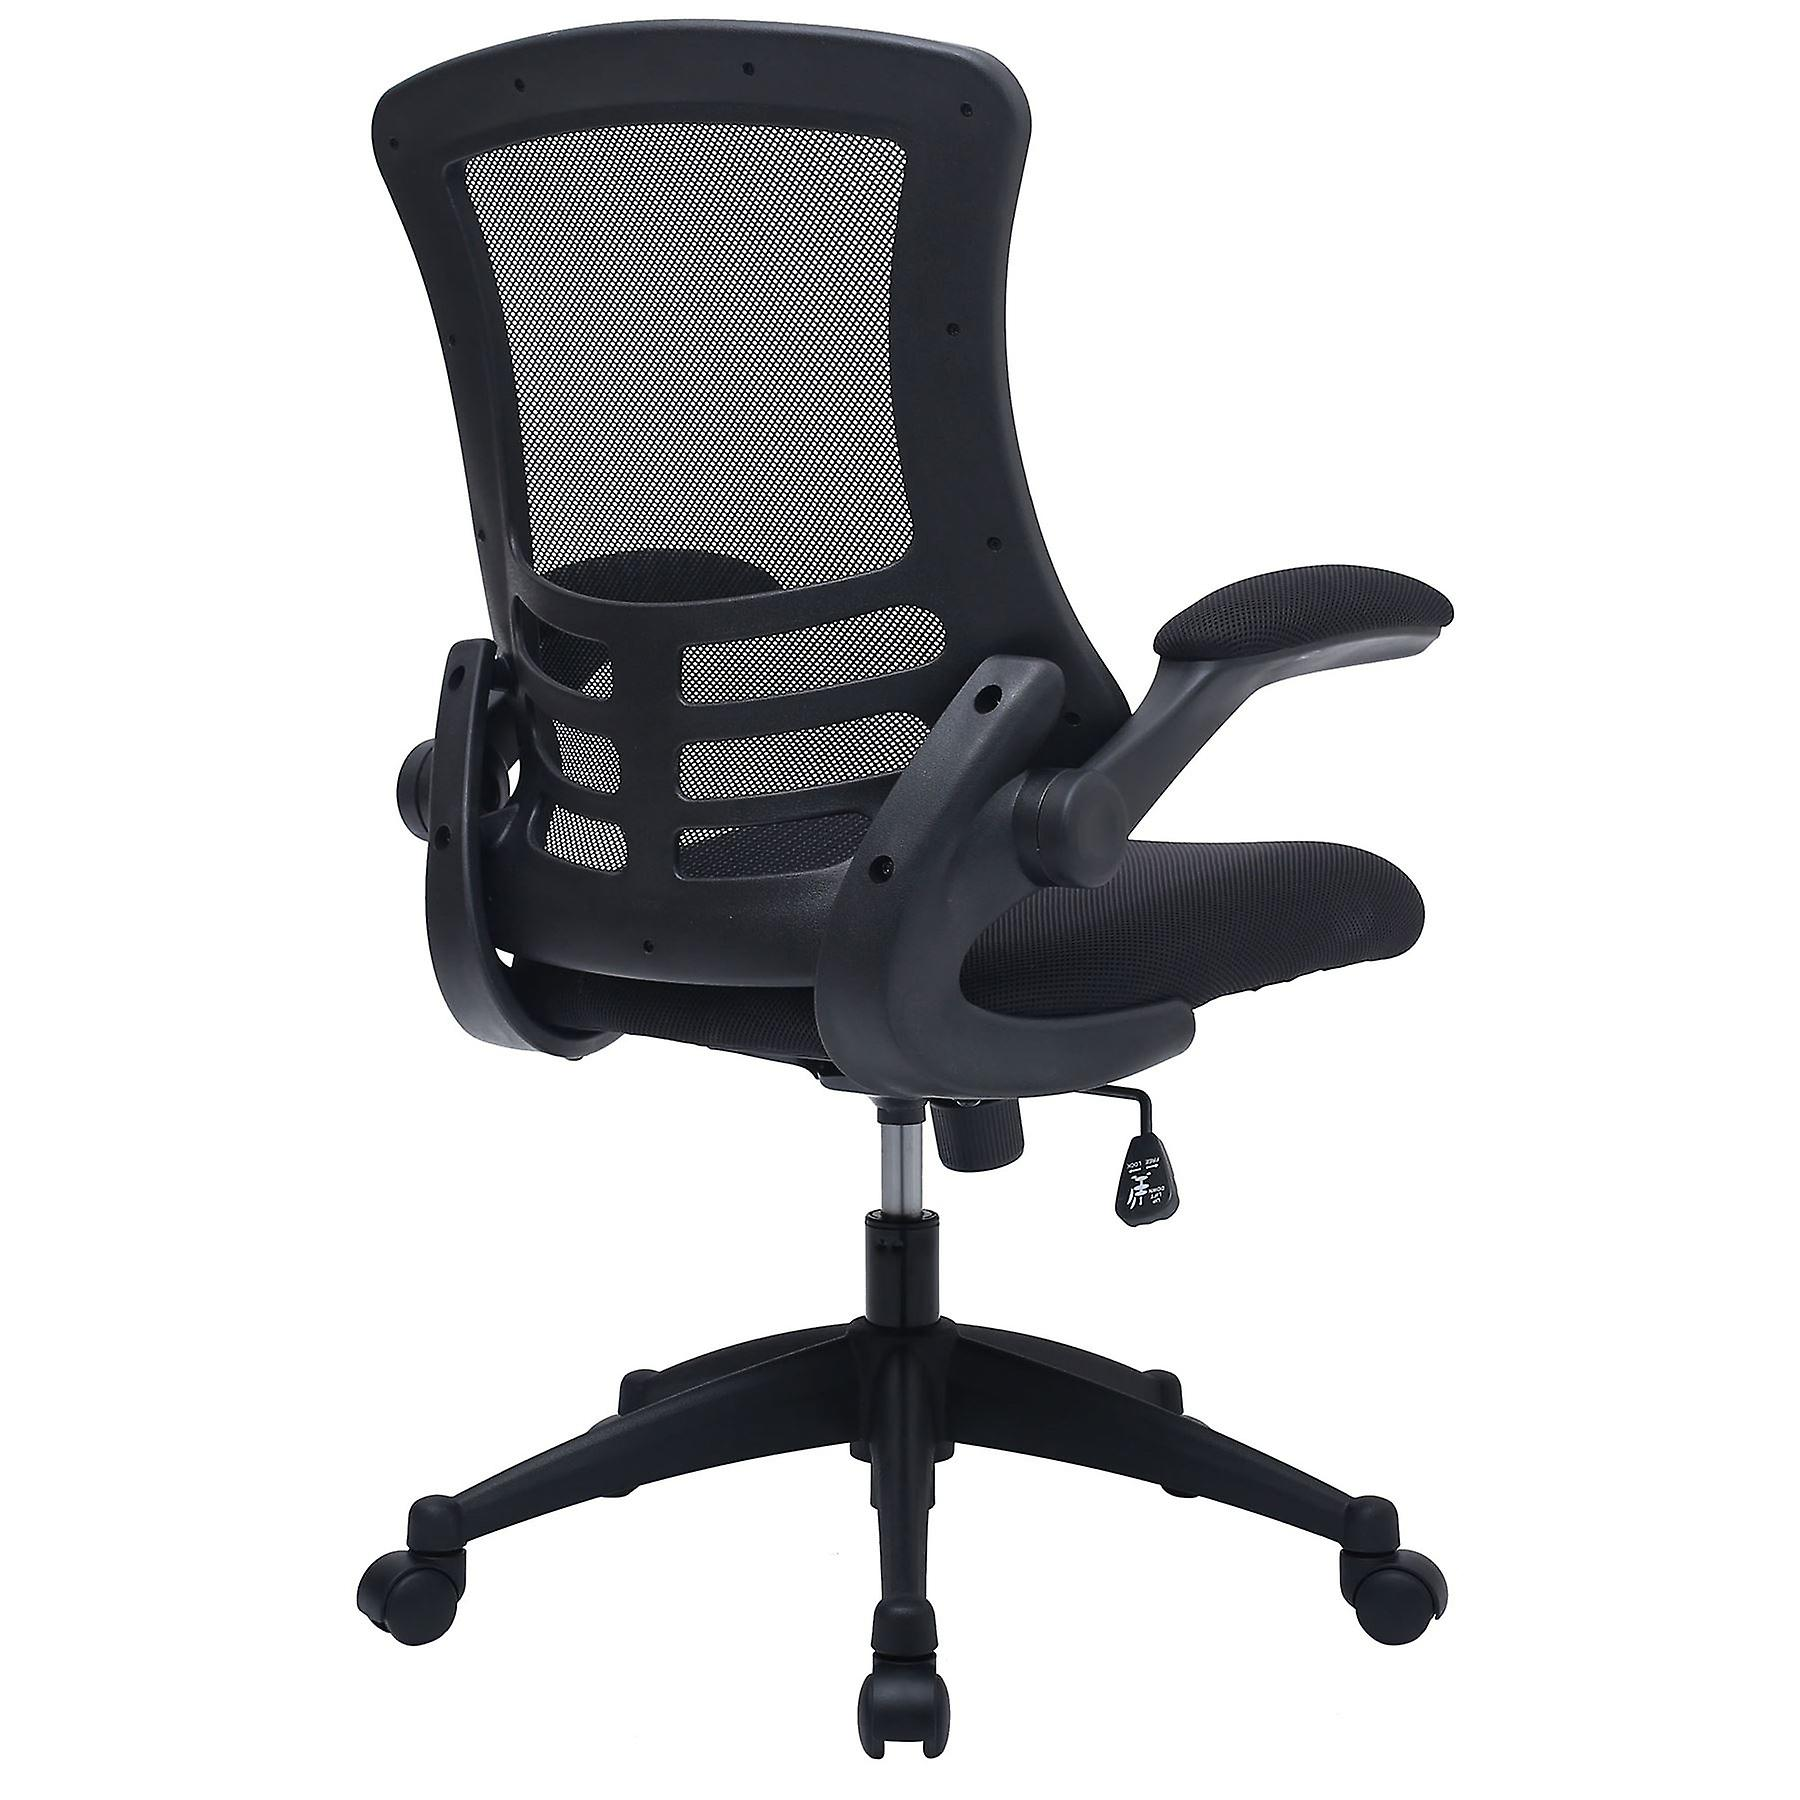 Luna Chair Black OC11bk